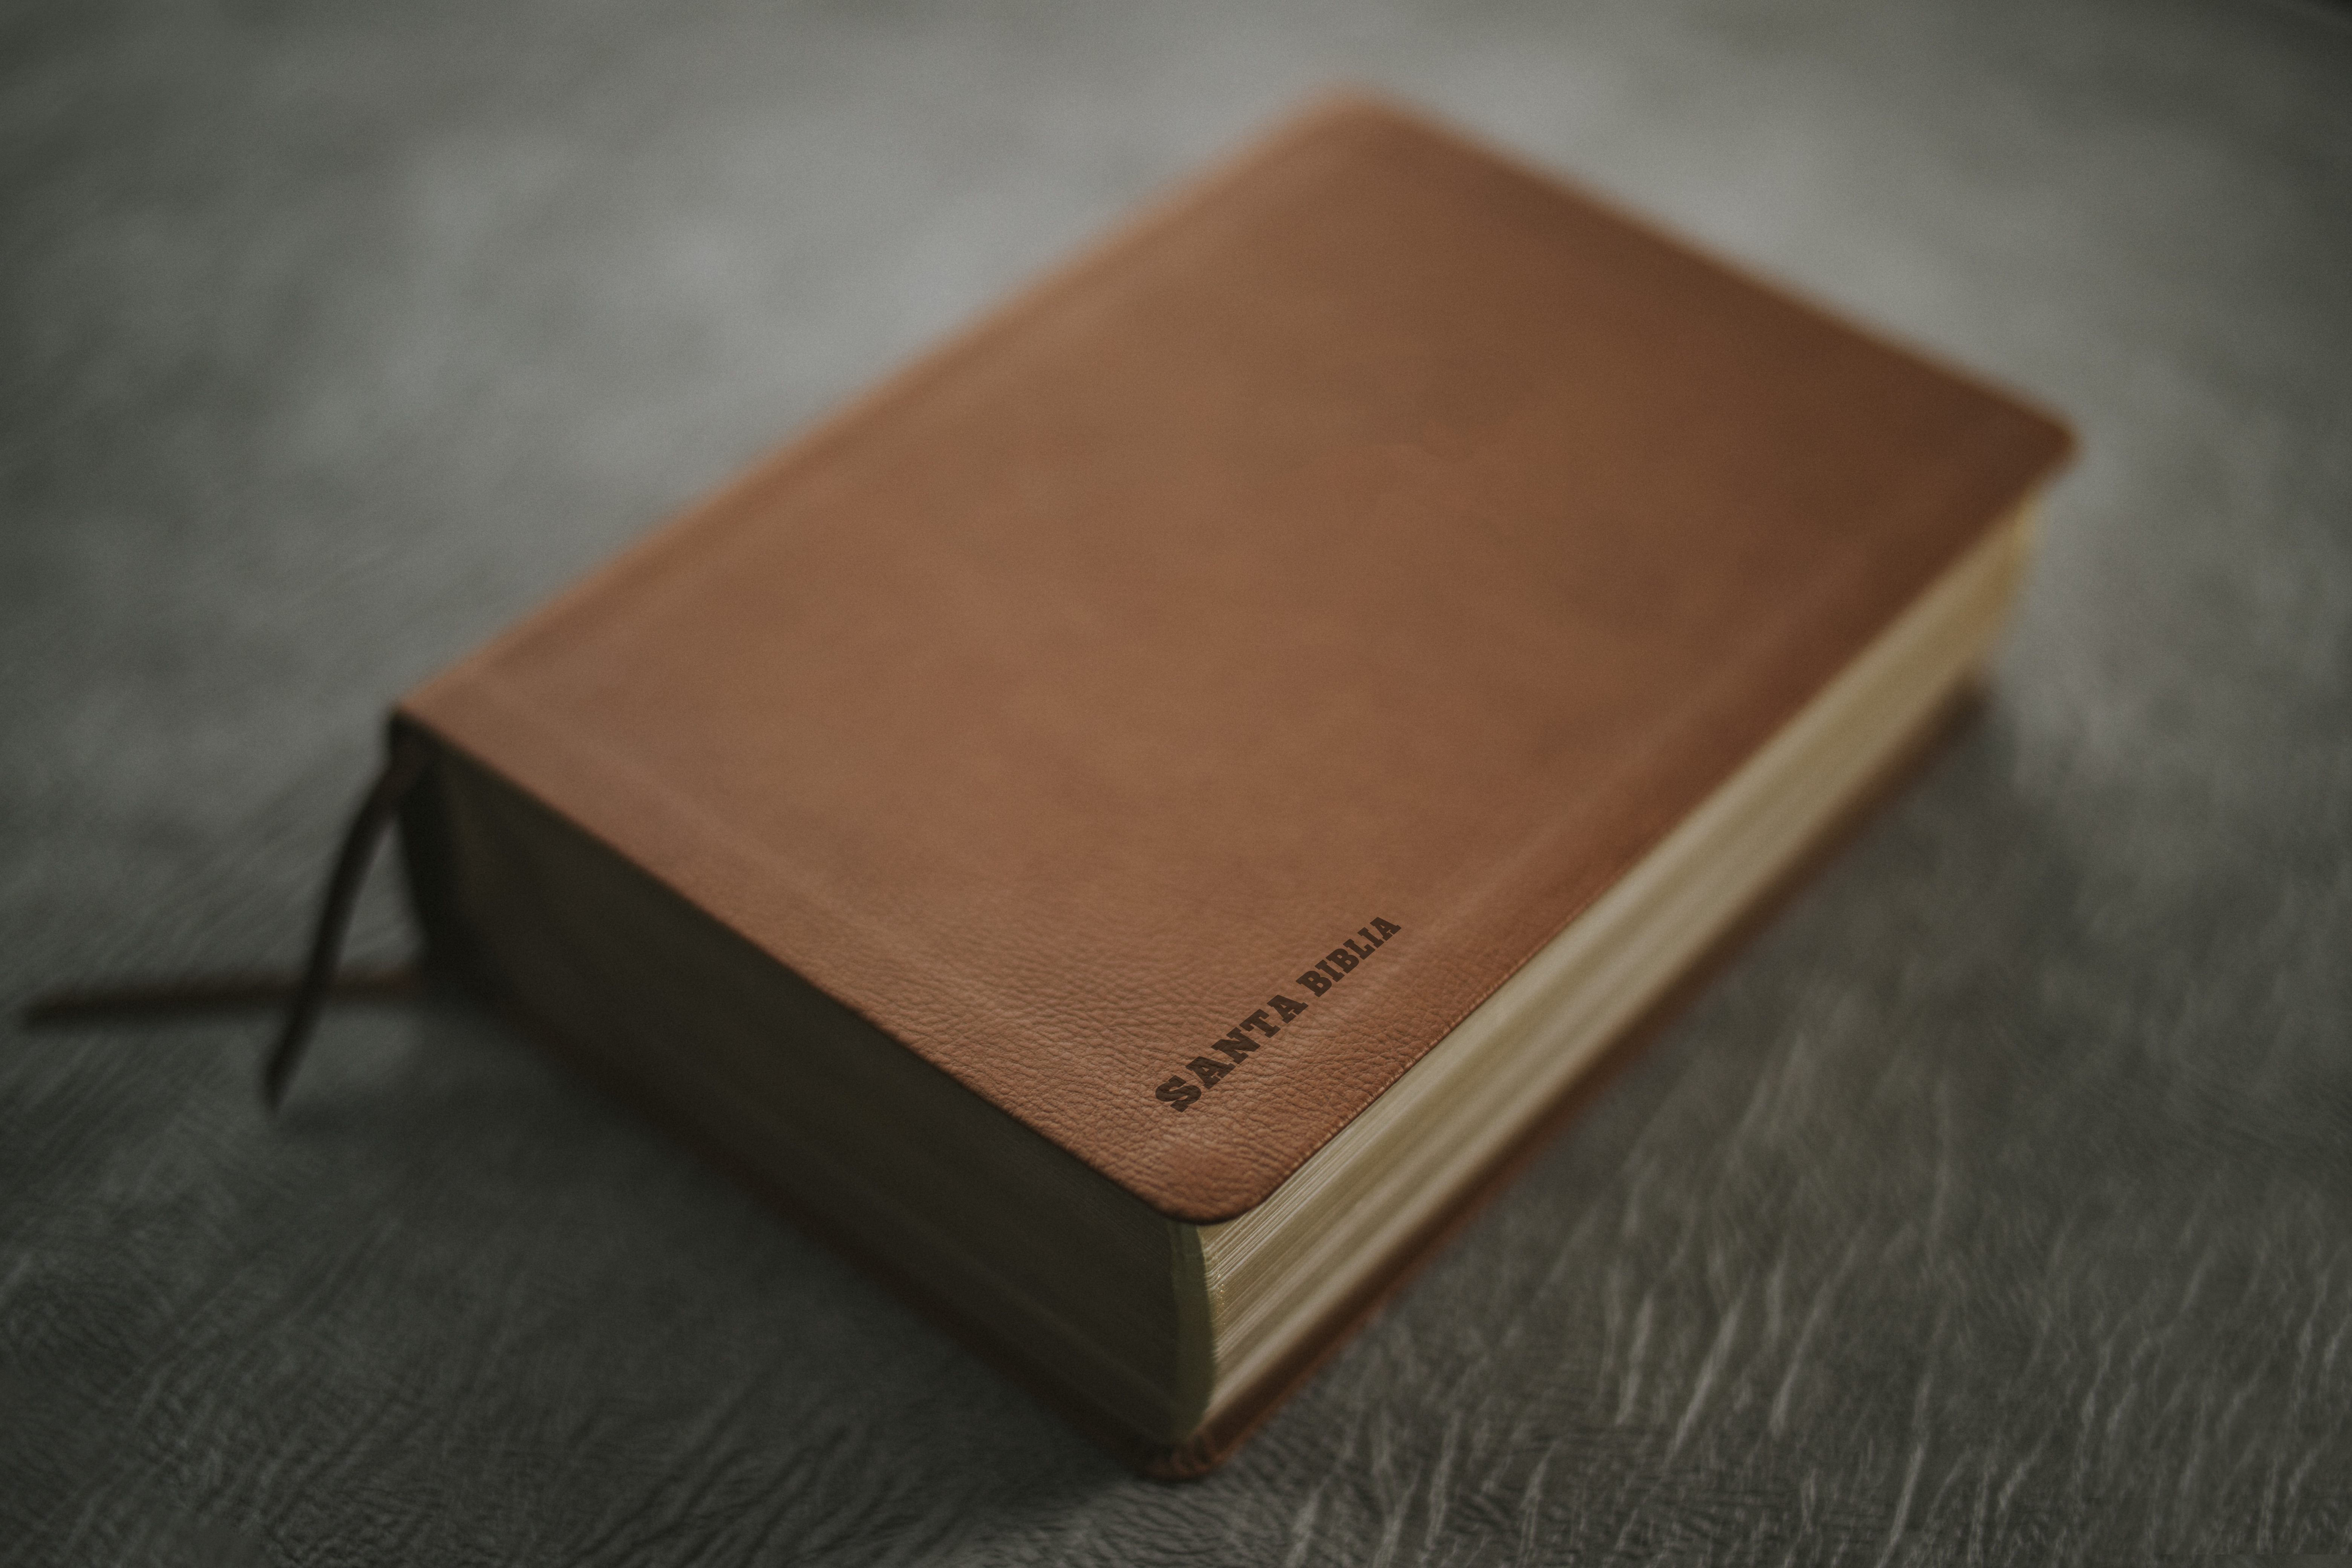 brown book on black wooden table